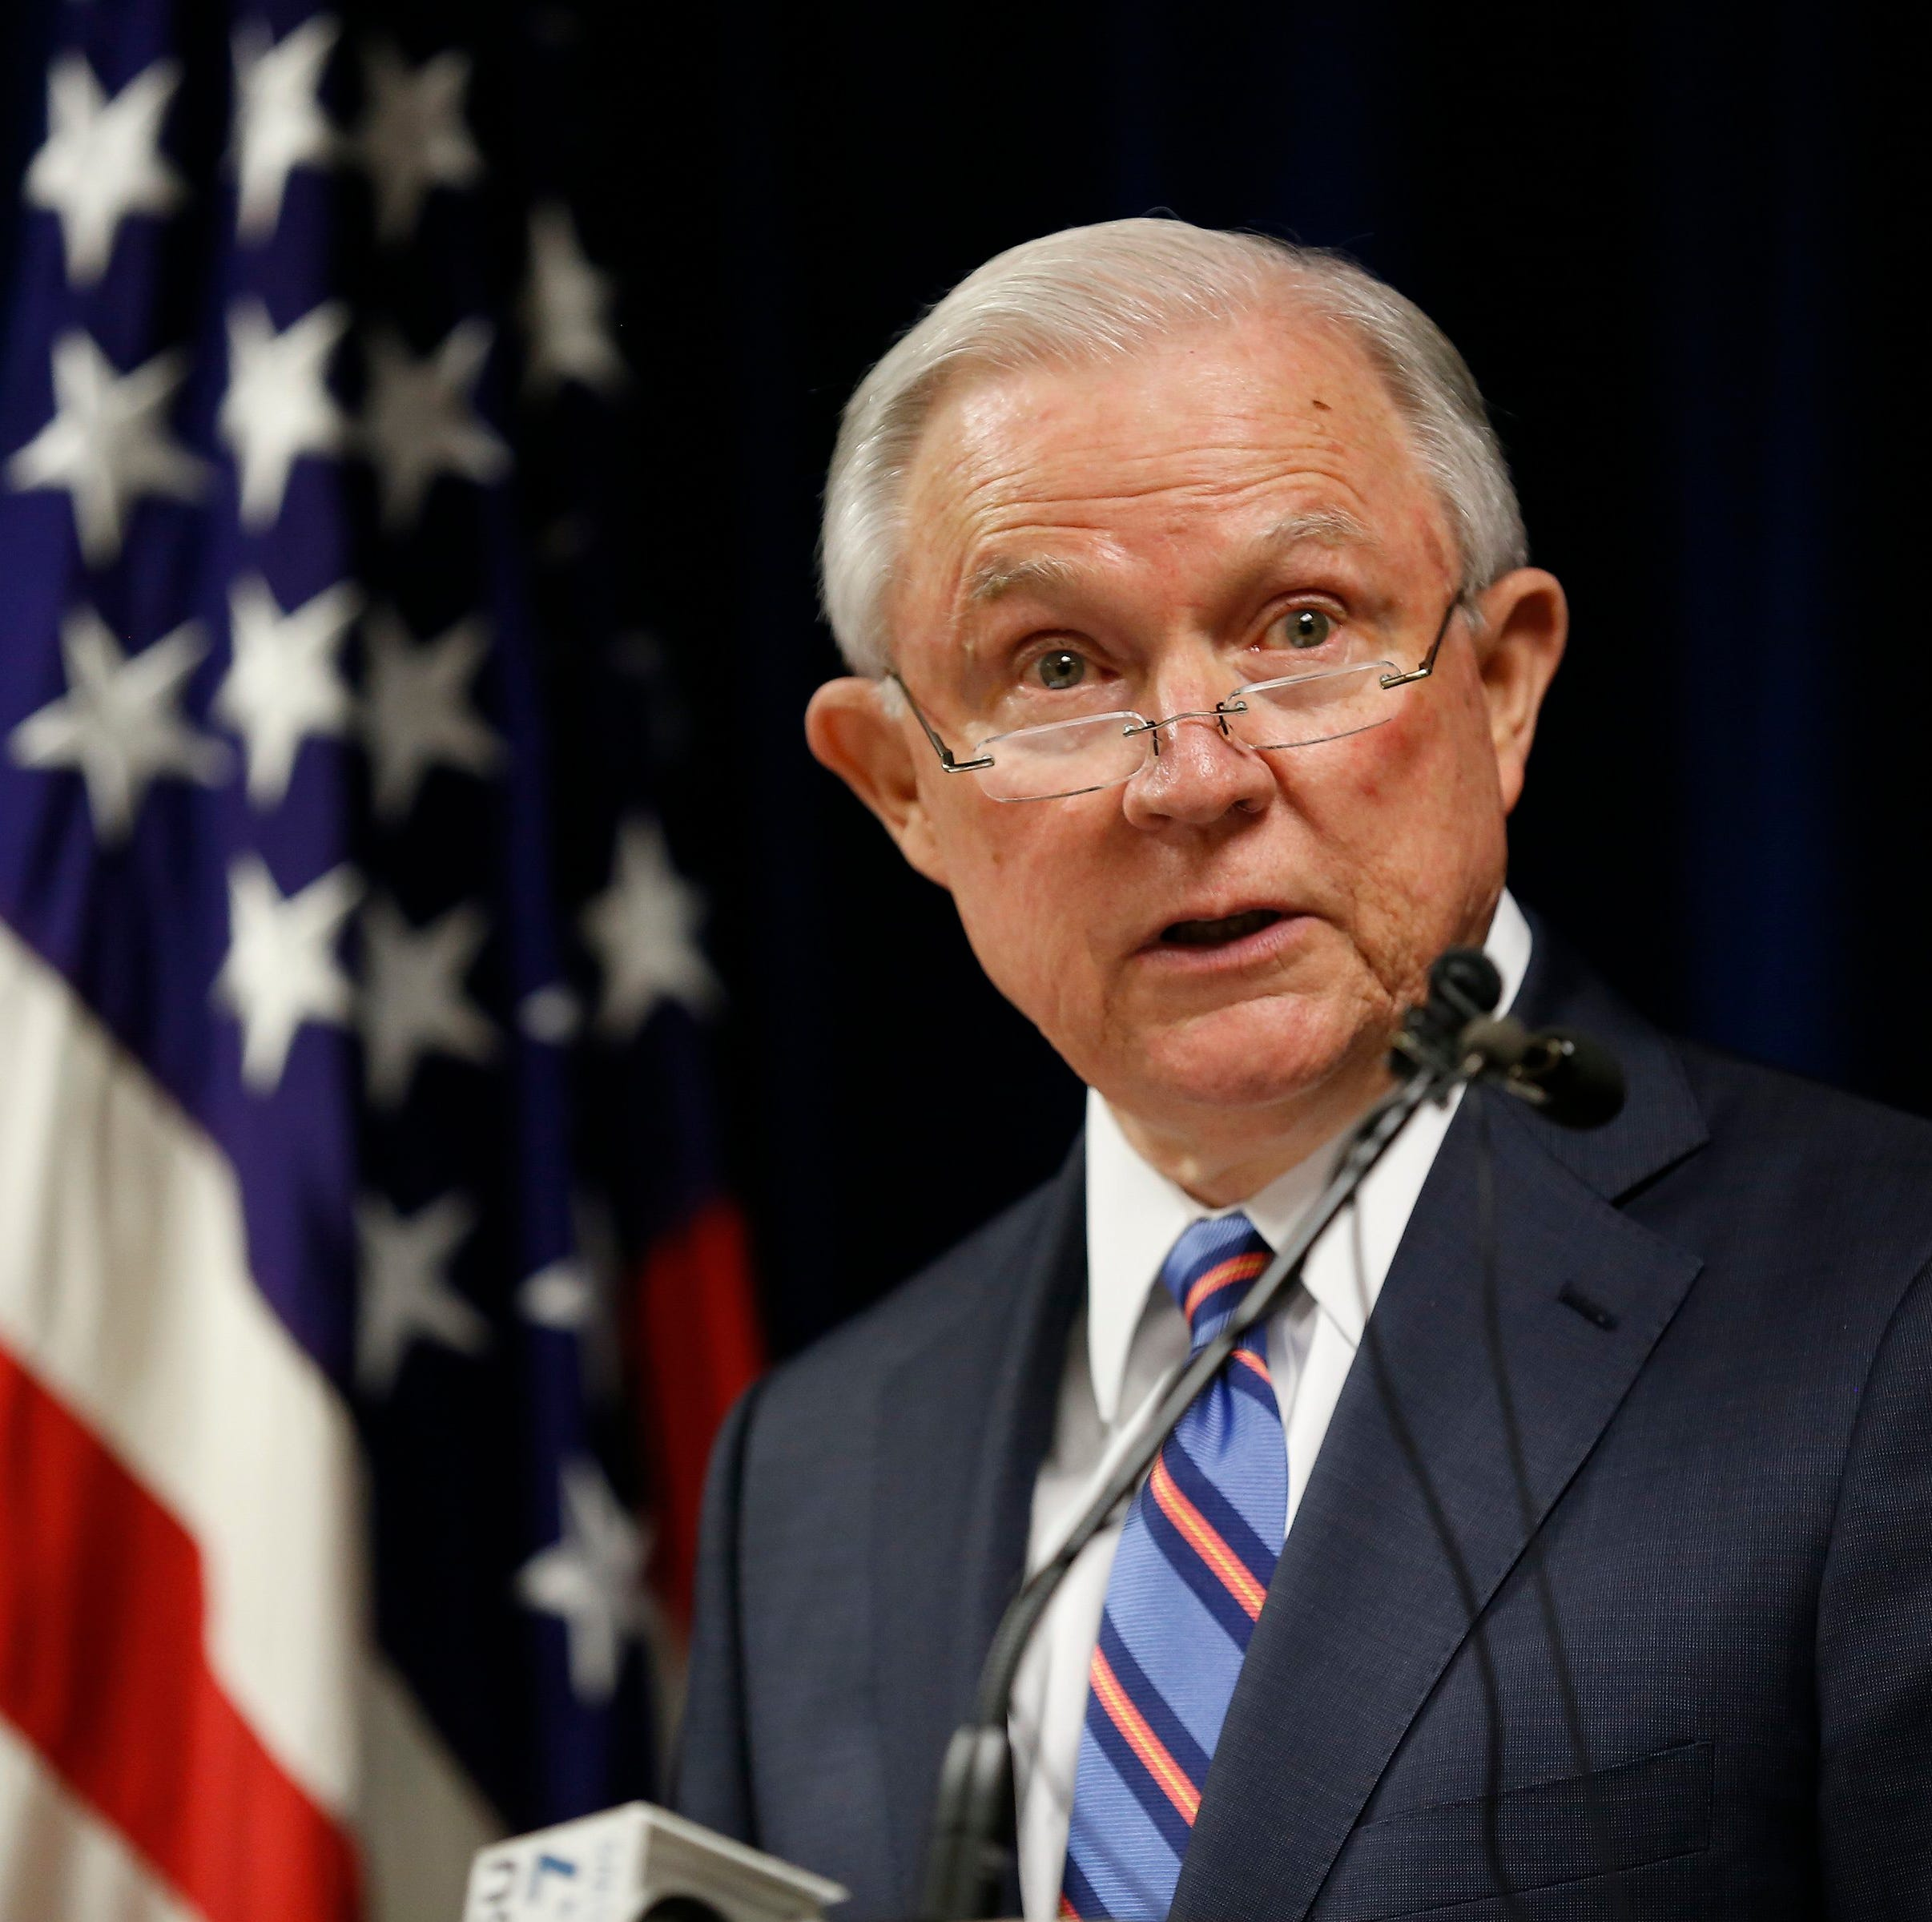 Trump Political Protection Plan: Replace Jeff Sessions with a Robert Mueller saboteur.